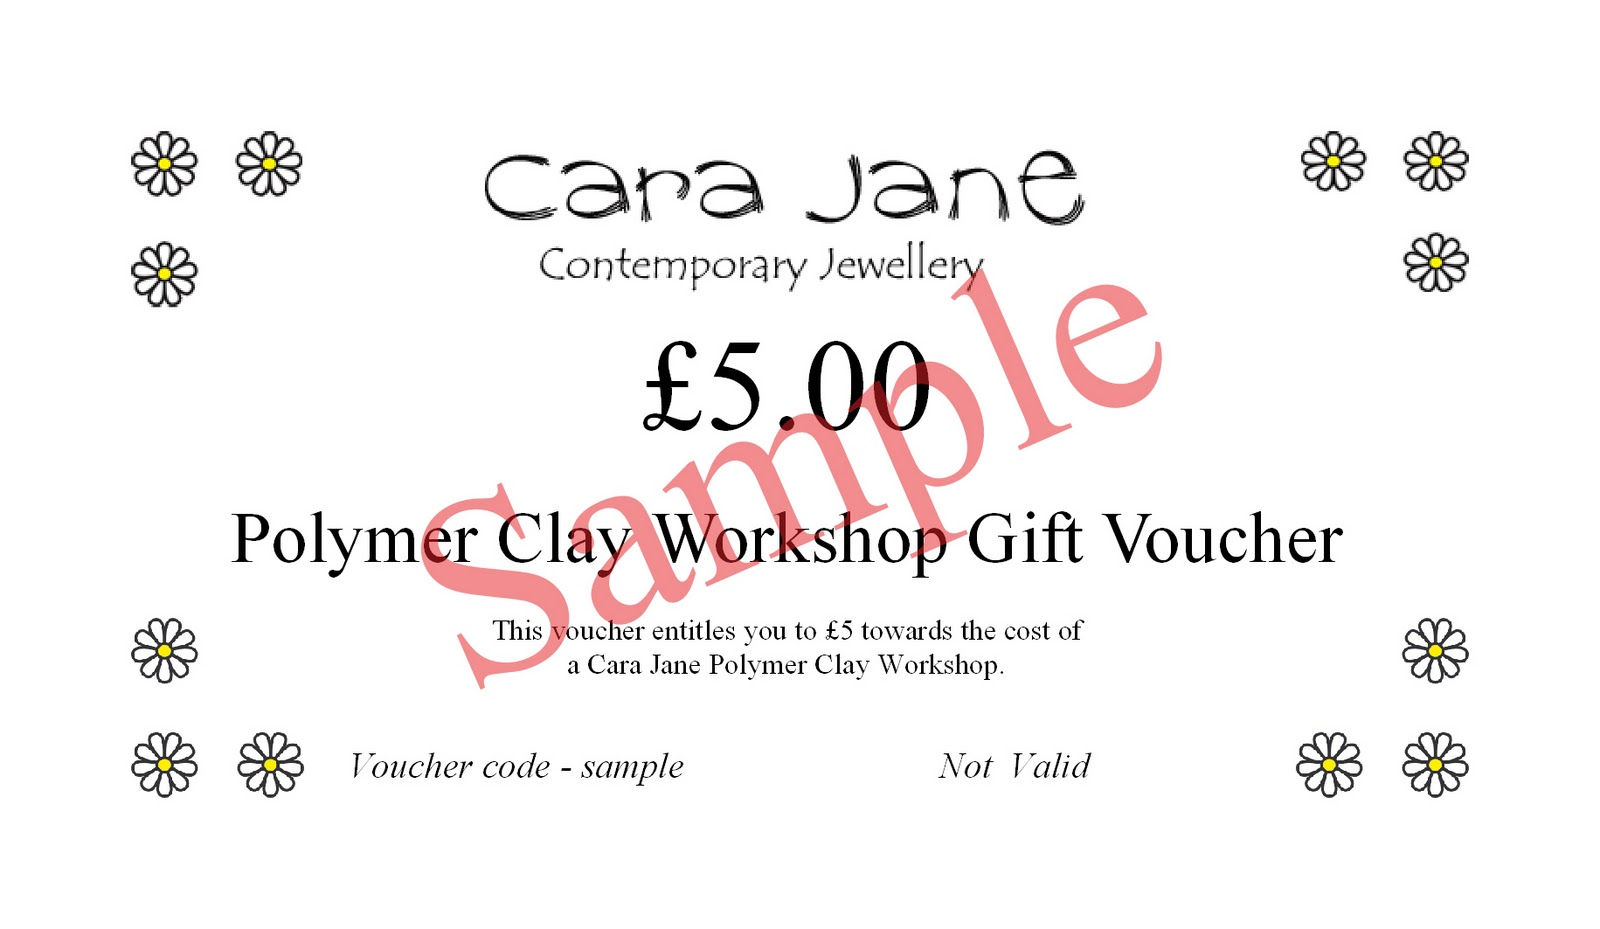 Examples Of Gift Vouchers sample gift certificates gift voucher – Examples of Gift Vouchers